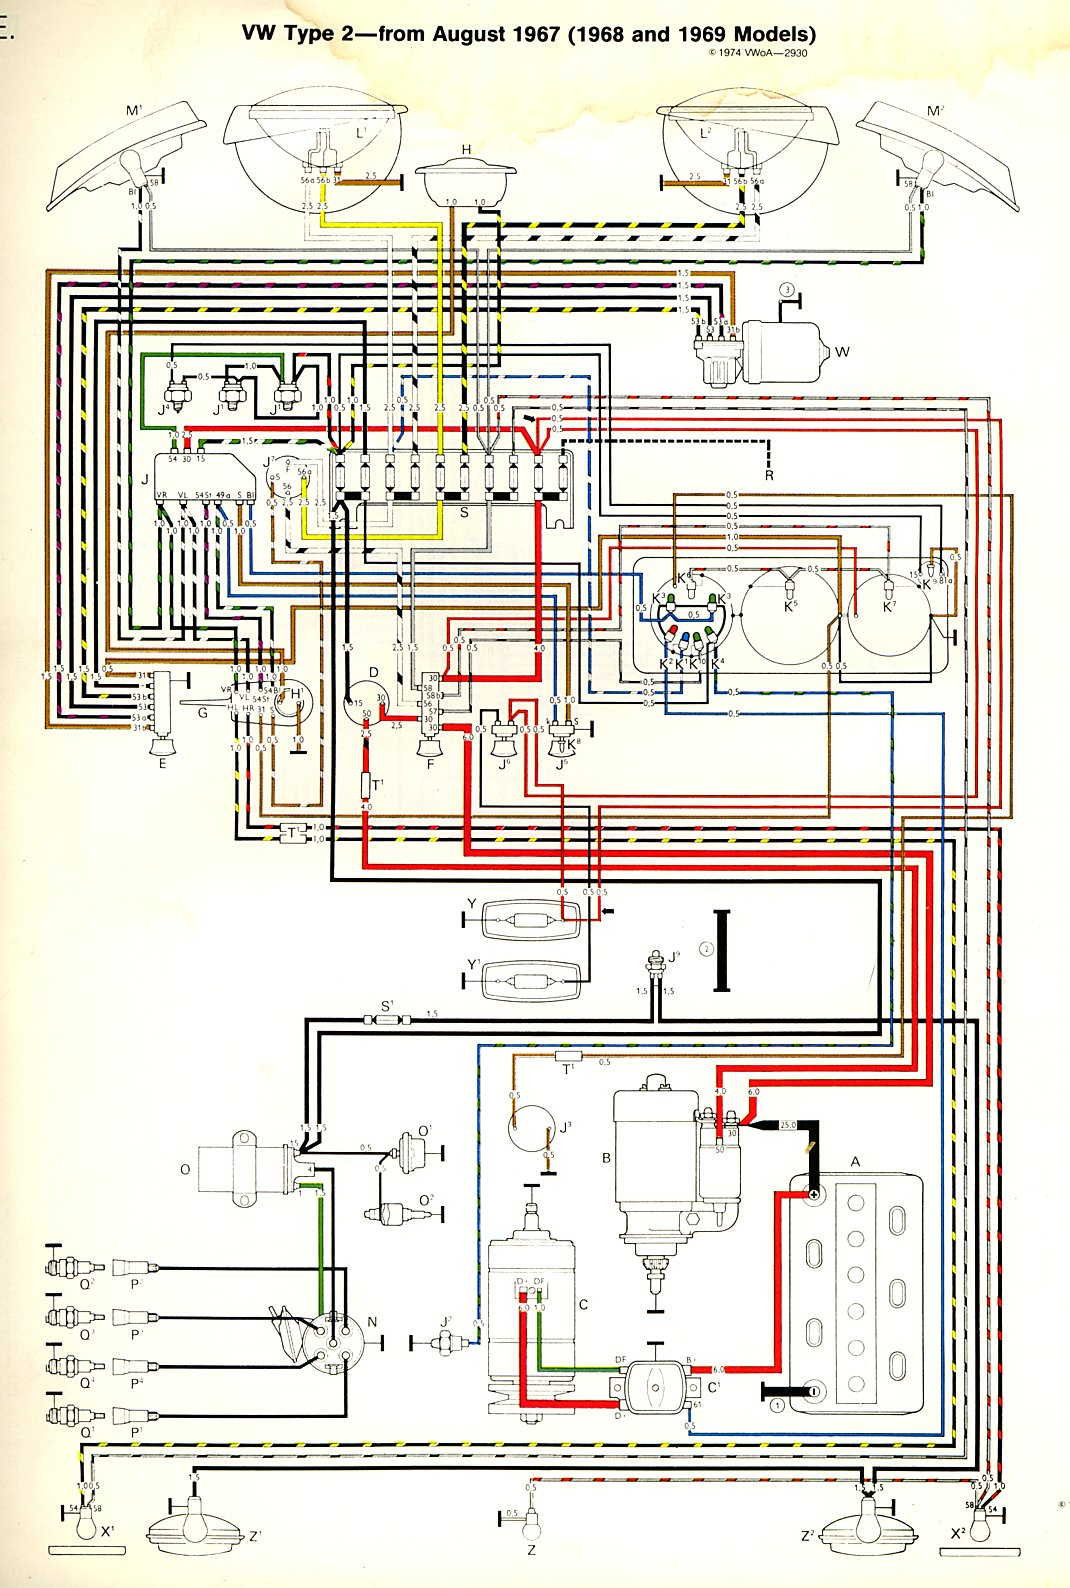 baybus_6869a bus wiring diagram vw wiring harness diagram \u2022 wiring diagrams j  at mifinder.co